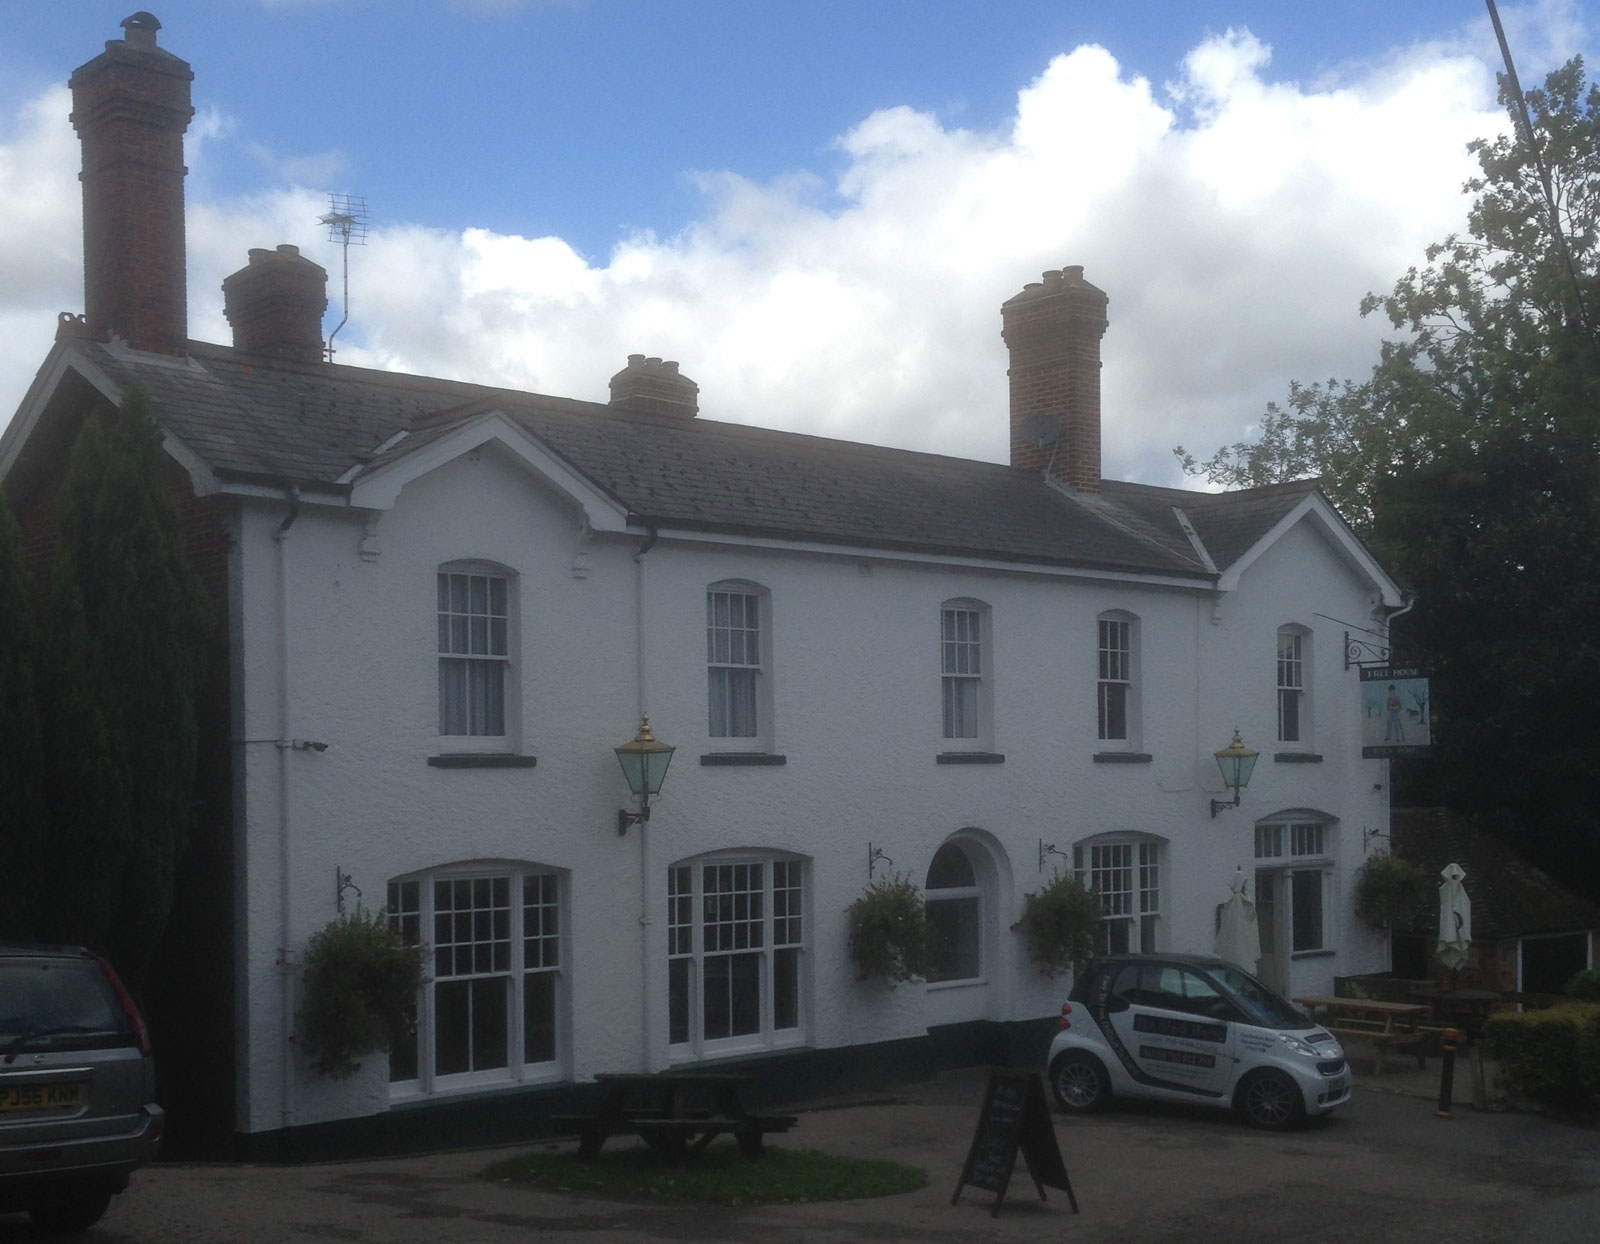 The Black Horse - Stansted - Kent